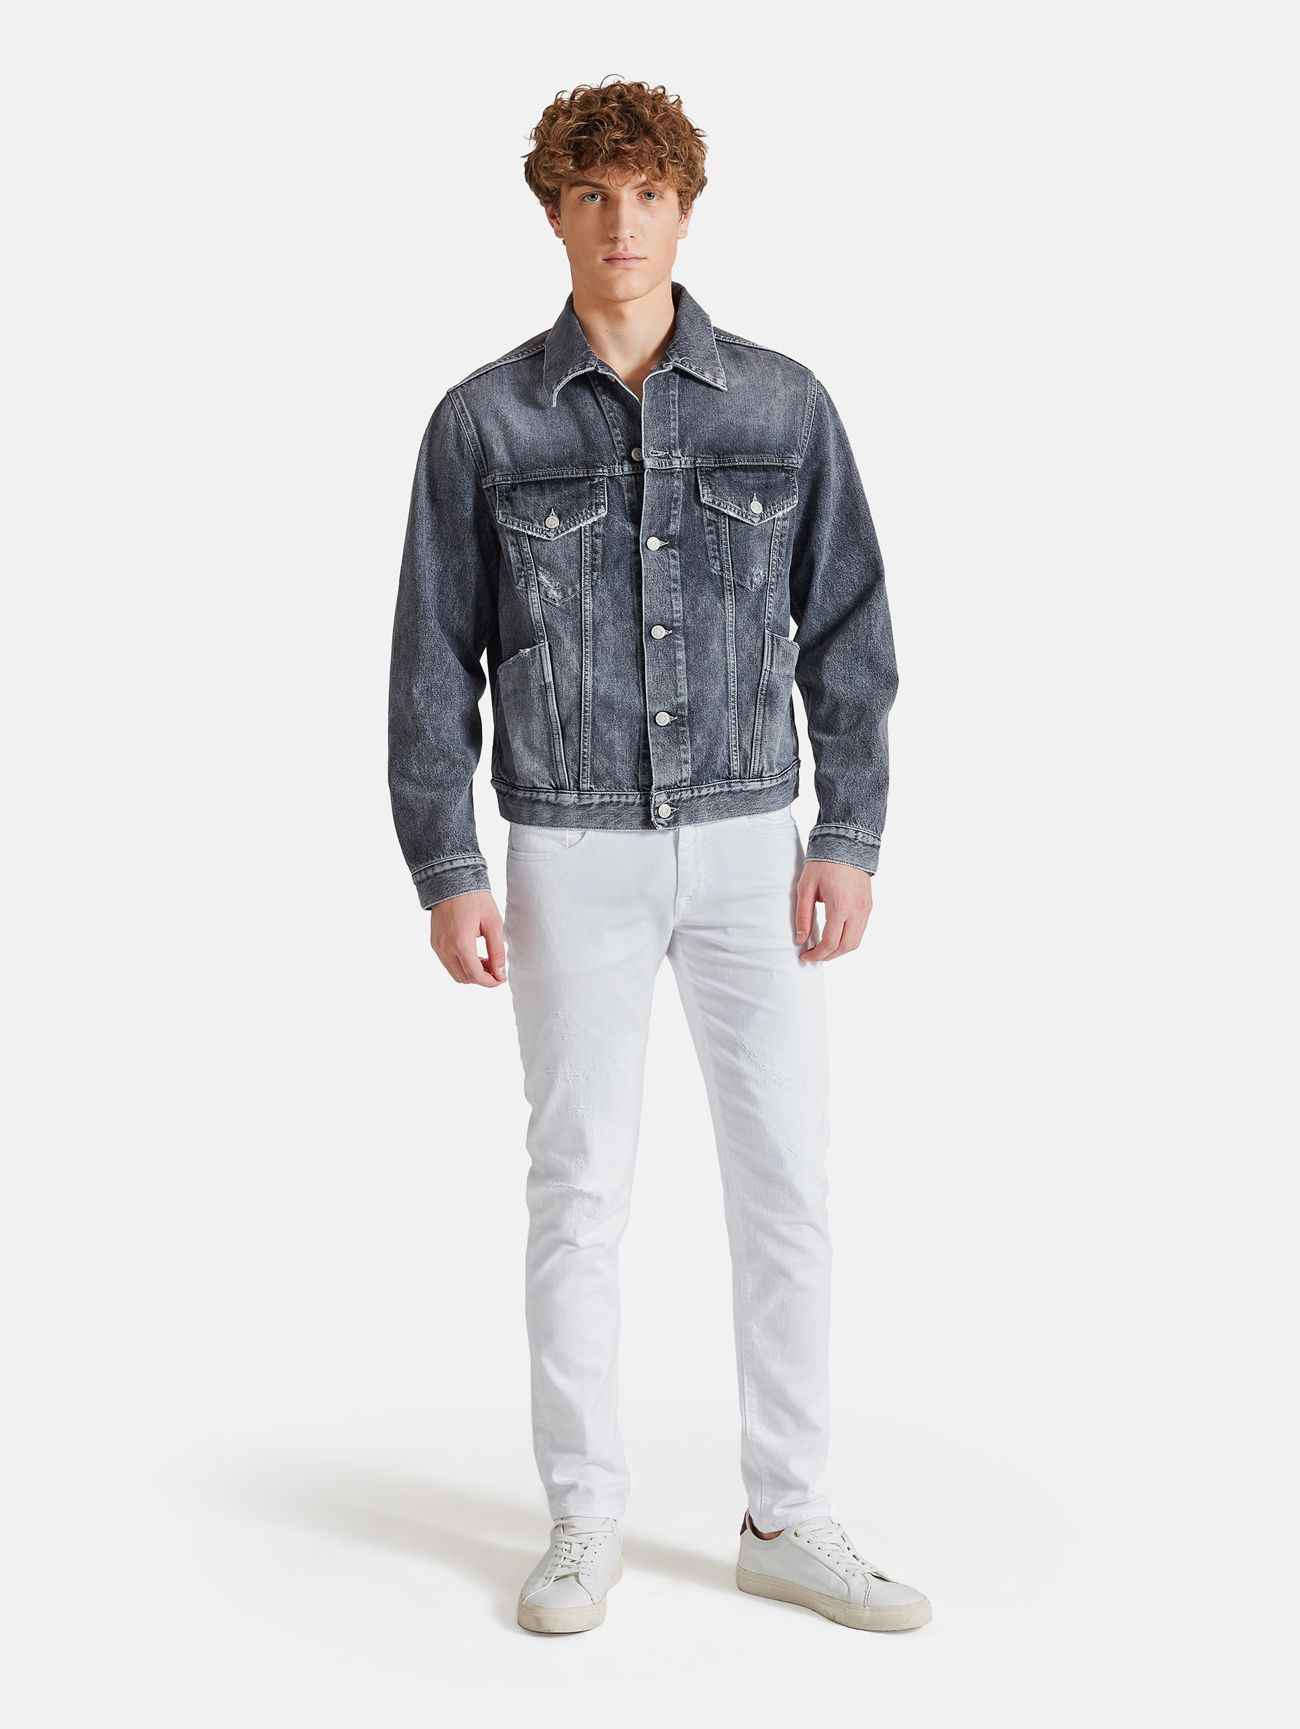 EVER DENIM TRACK JACKET SALT AND PEPPER BLACK